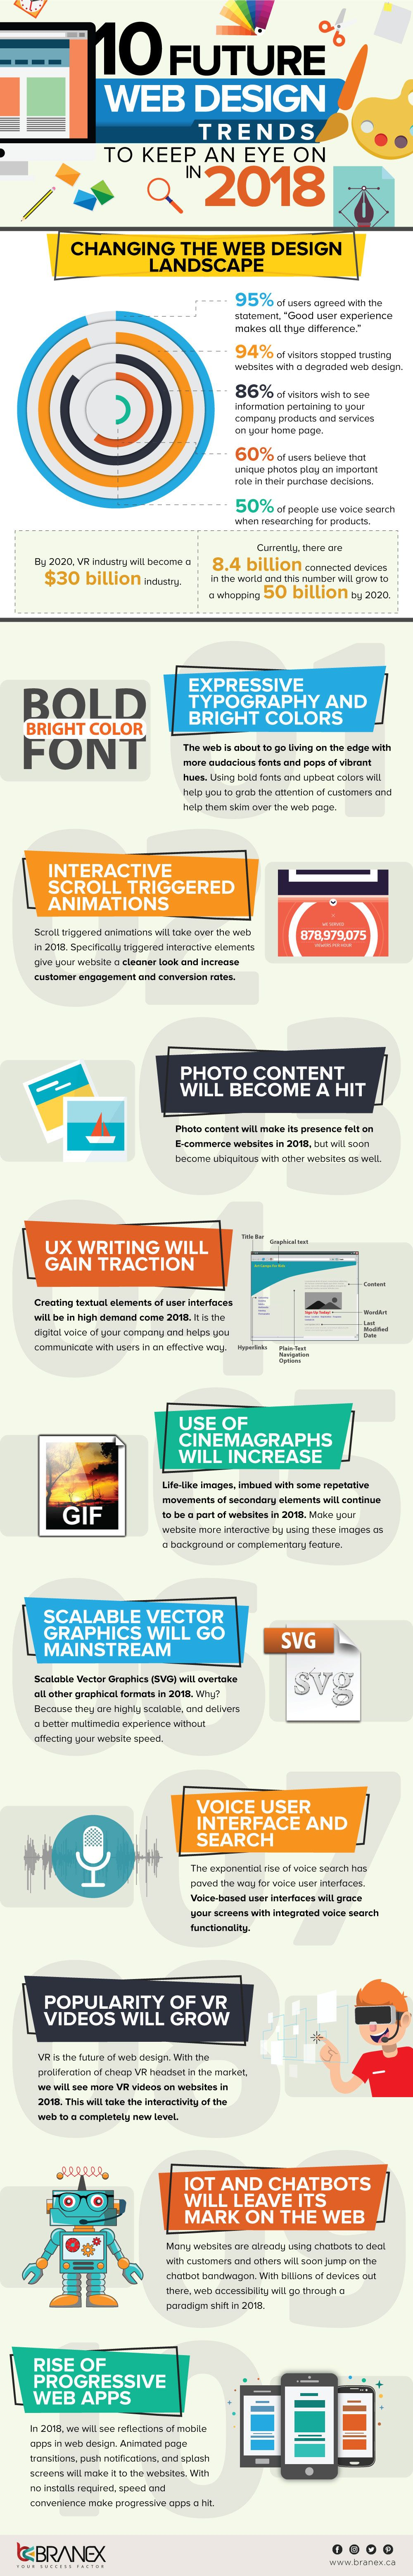 10 Futuristic Web Design Trends To Look Out For In 2018 Infographic Branex Web Design Trends Web Development Design Web Design Tips